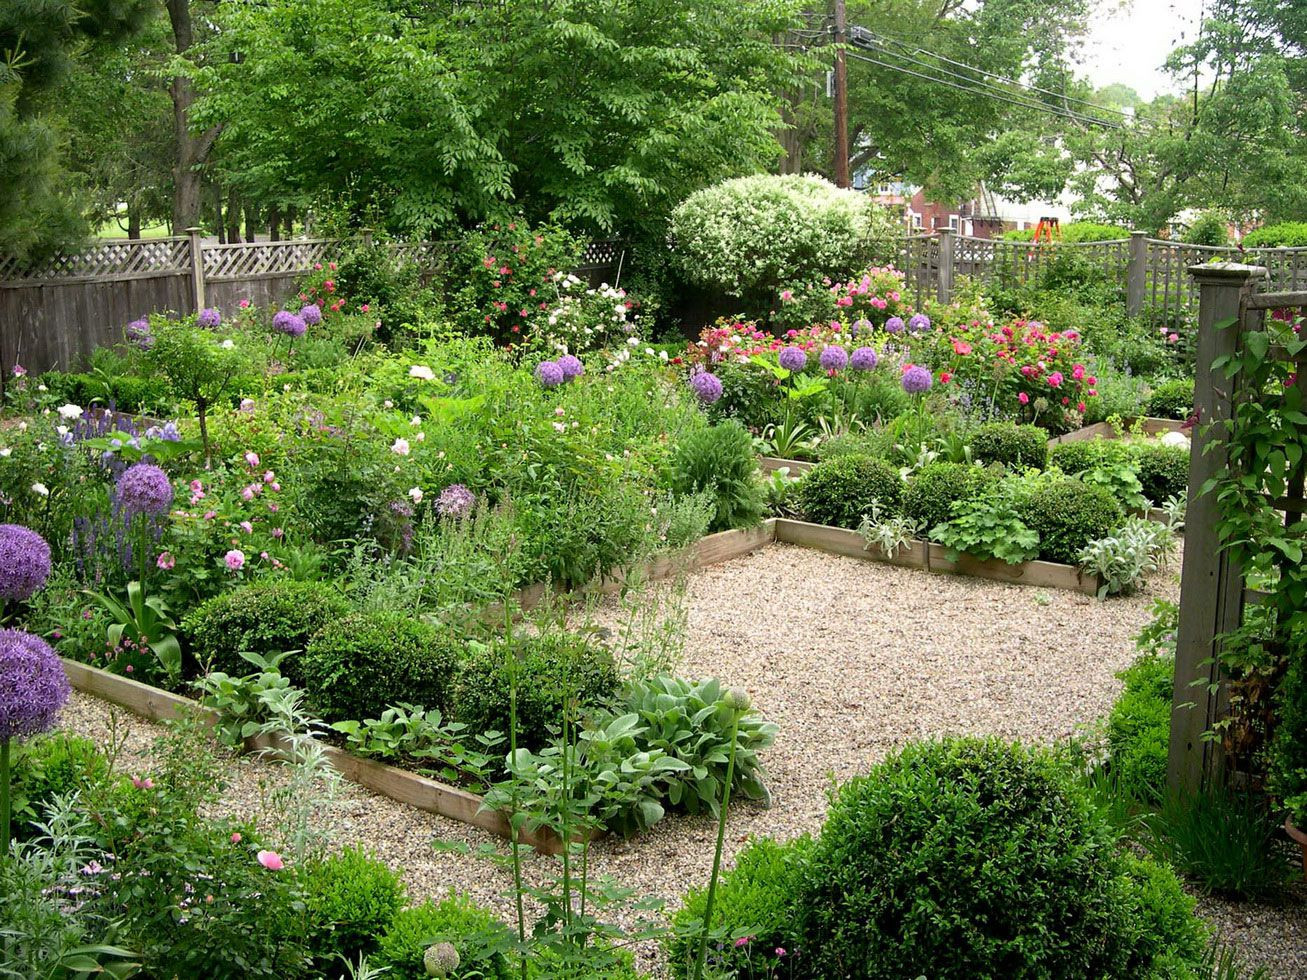 Best ideas about Garden Ideas Backyard . Save or Pin 4 Backyard Garden Ideas You Have to Try Immediately Now.